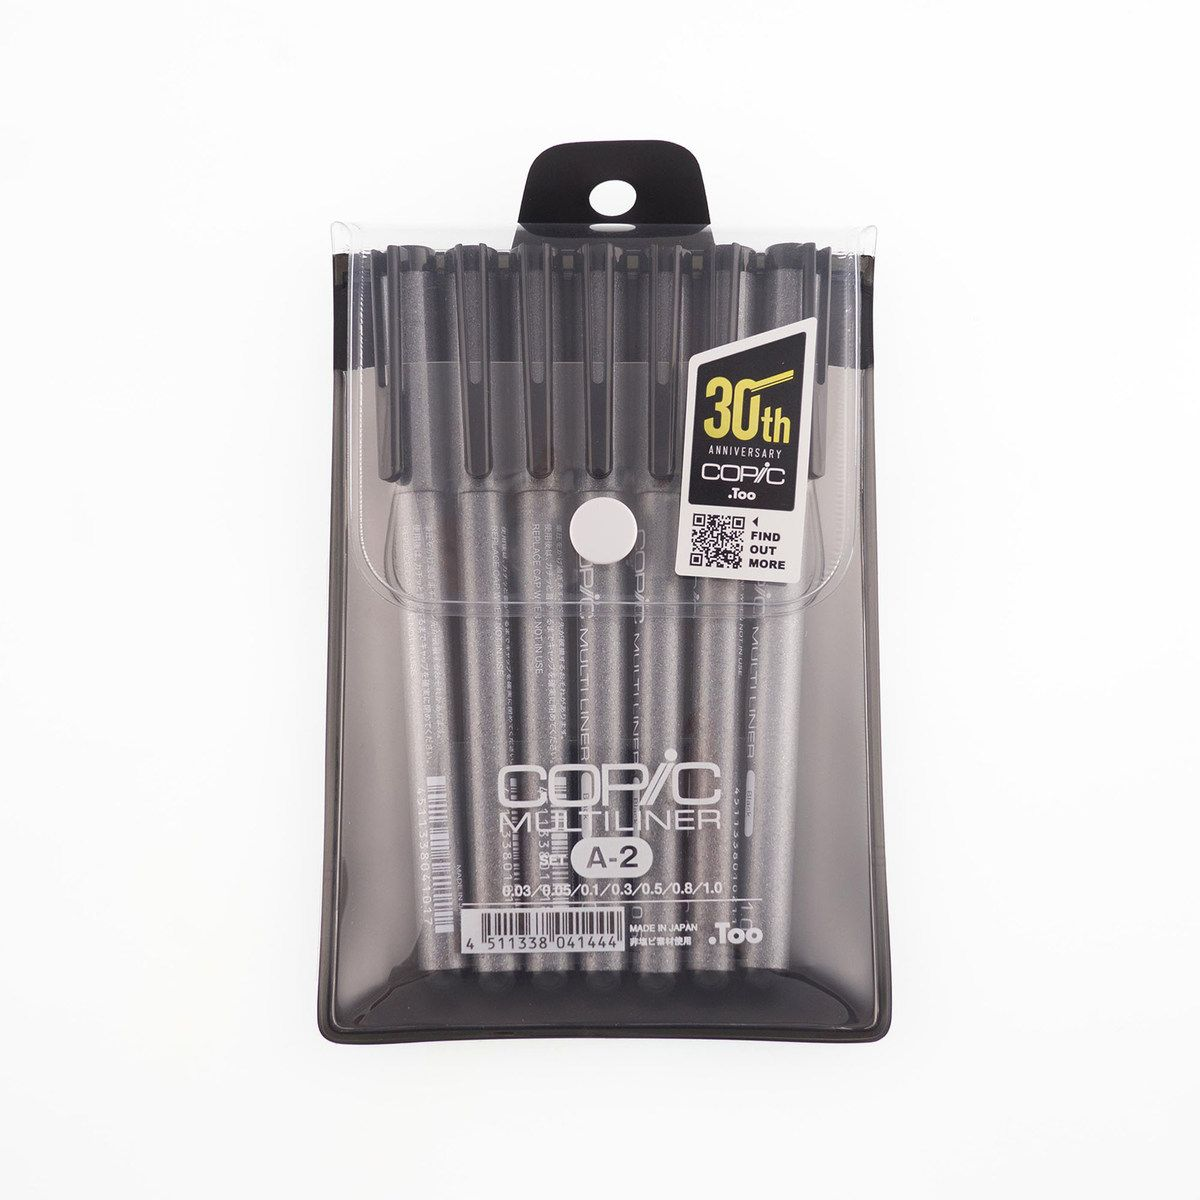 KIT MULTILINER A-2 C/ 7 UNIDADES